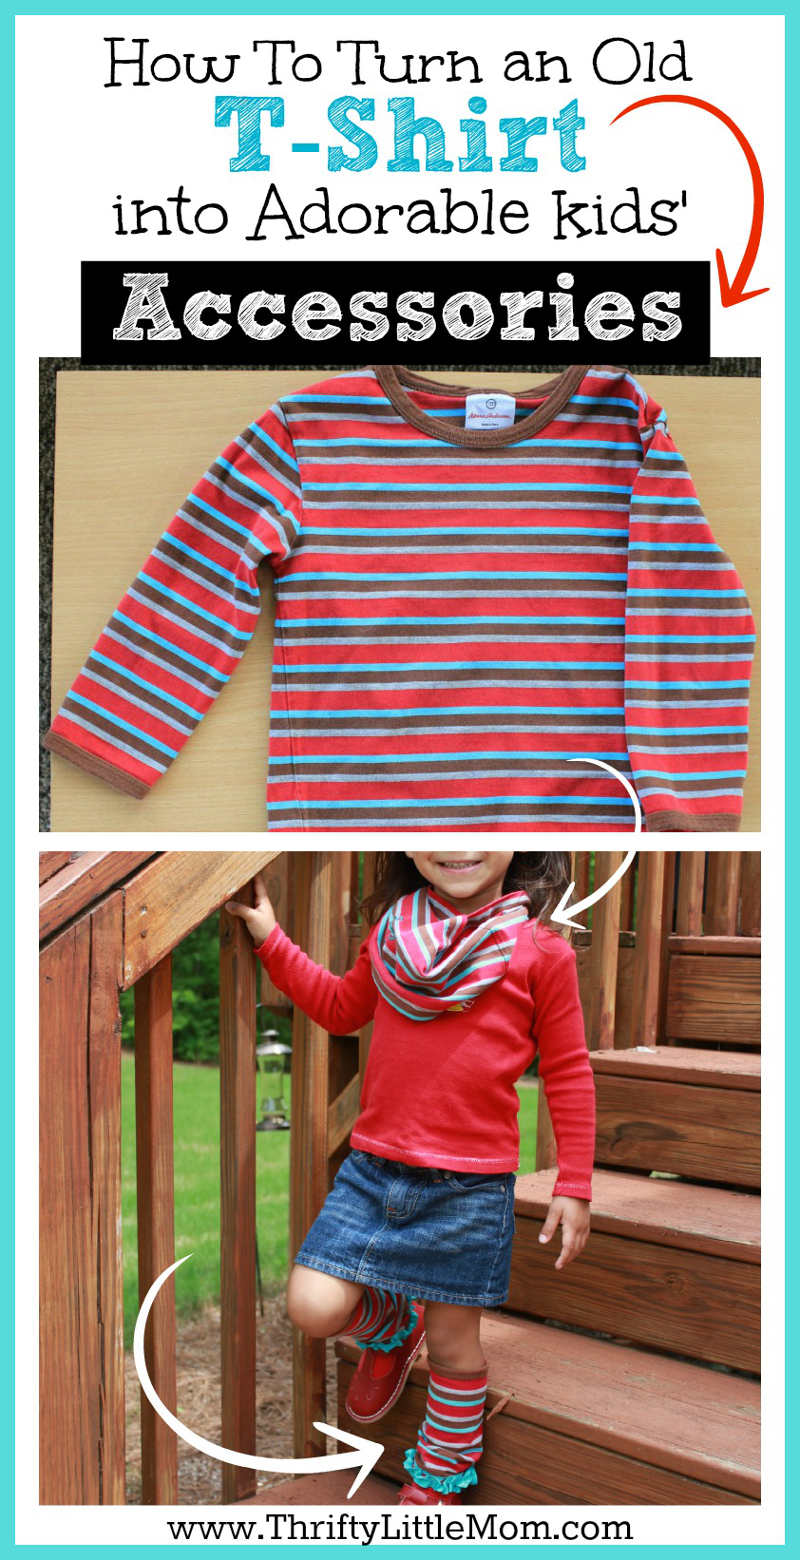 How to Turn an Old T-shirt into Adorable Kids accessories